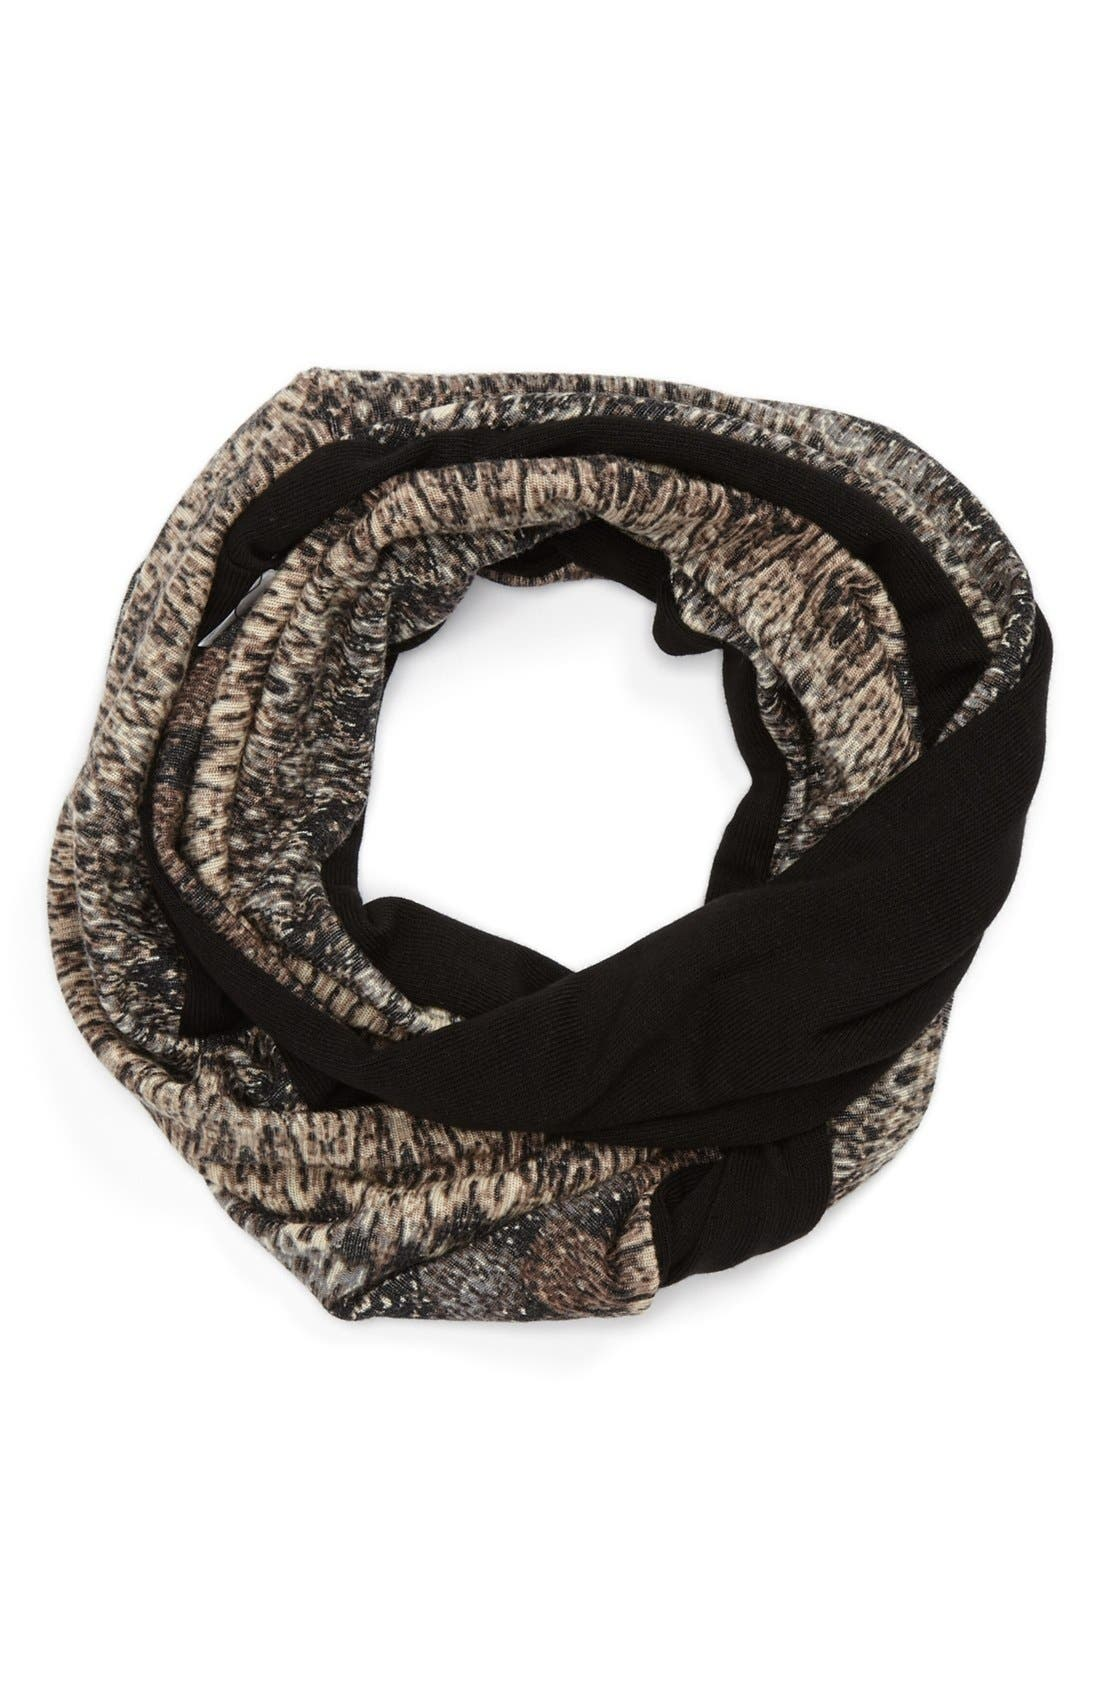 Alternate Image 1 Selected - Nordstrom Print Infinity Scarf